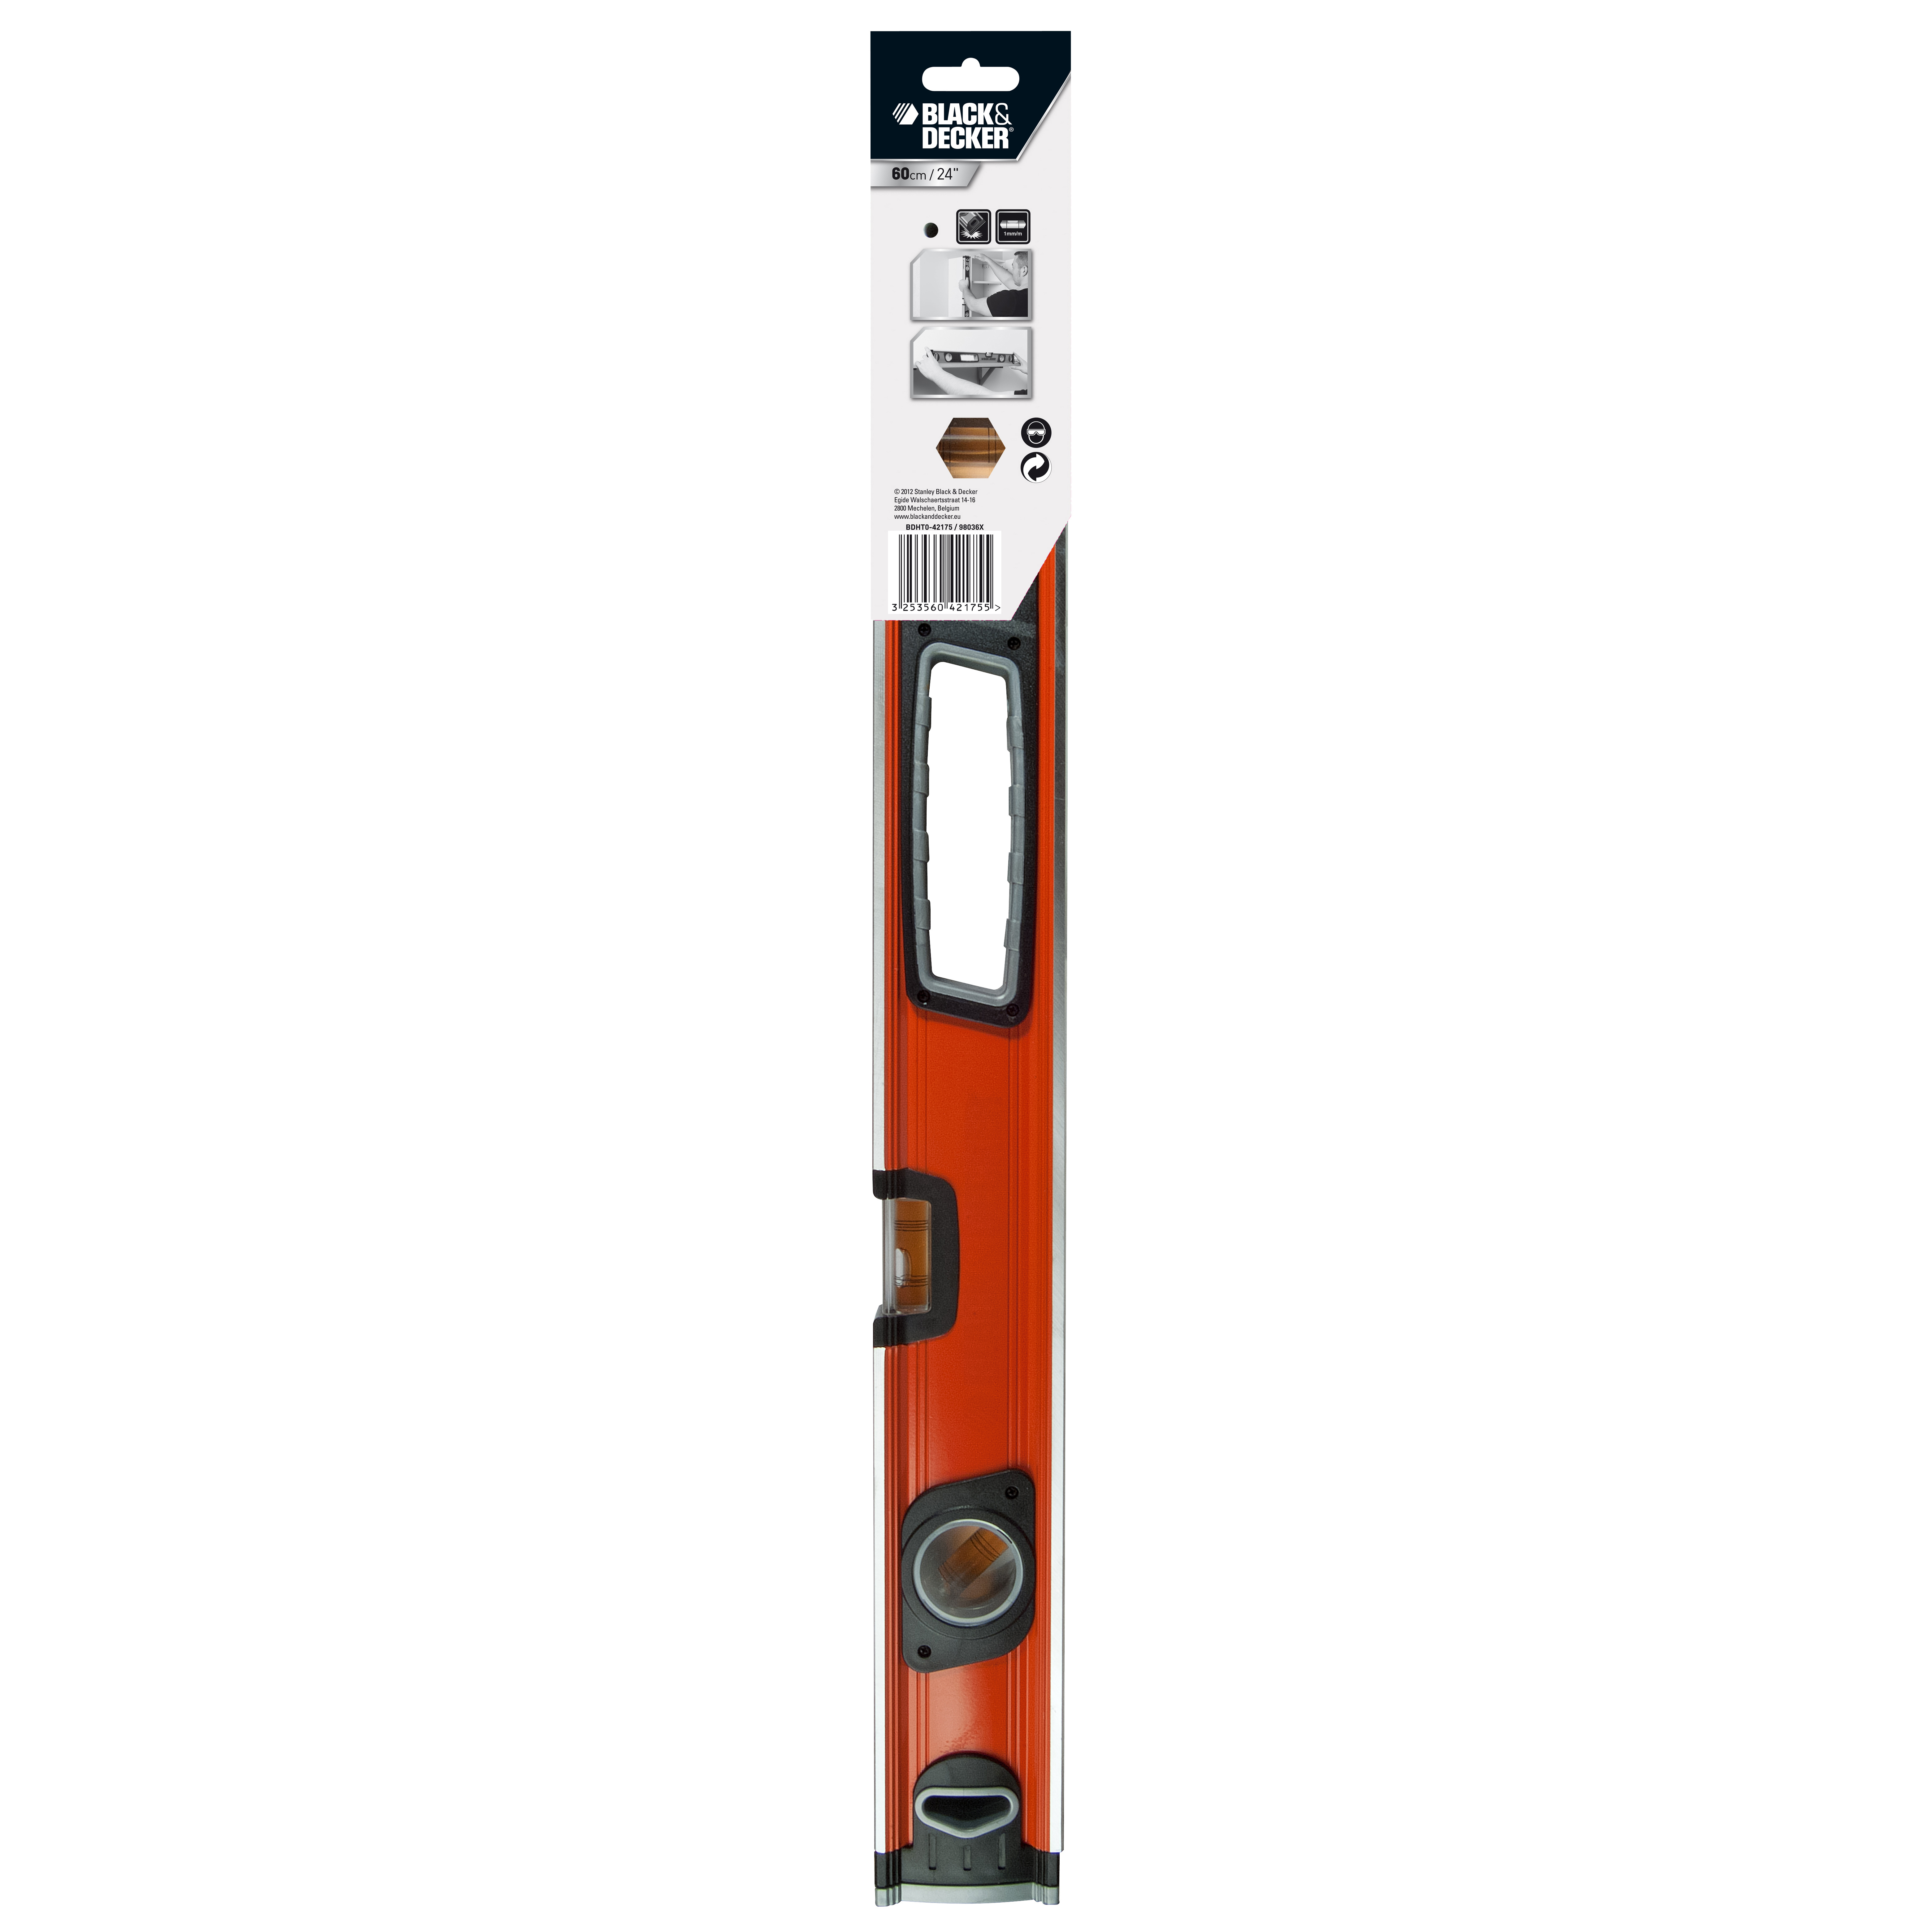 Black + Decker BDHT042175 Box Level, 60 cm, 24? Thumbnail 9